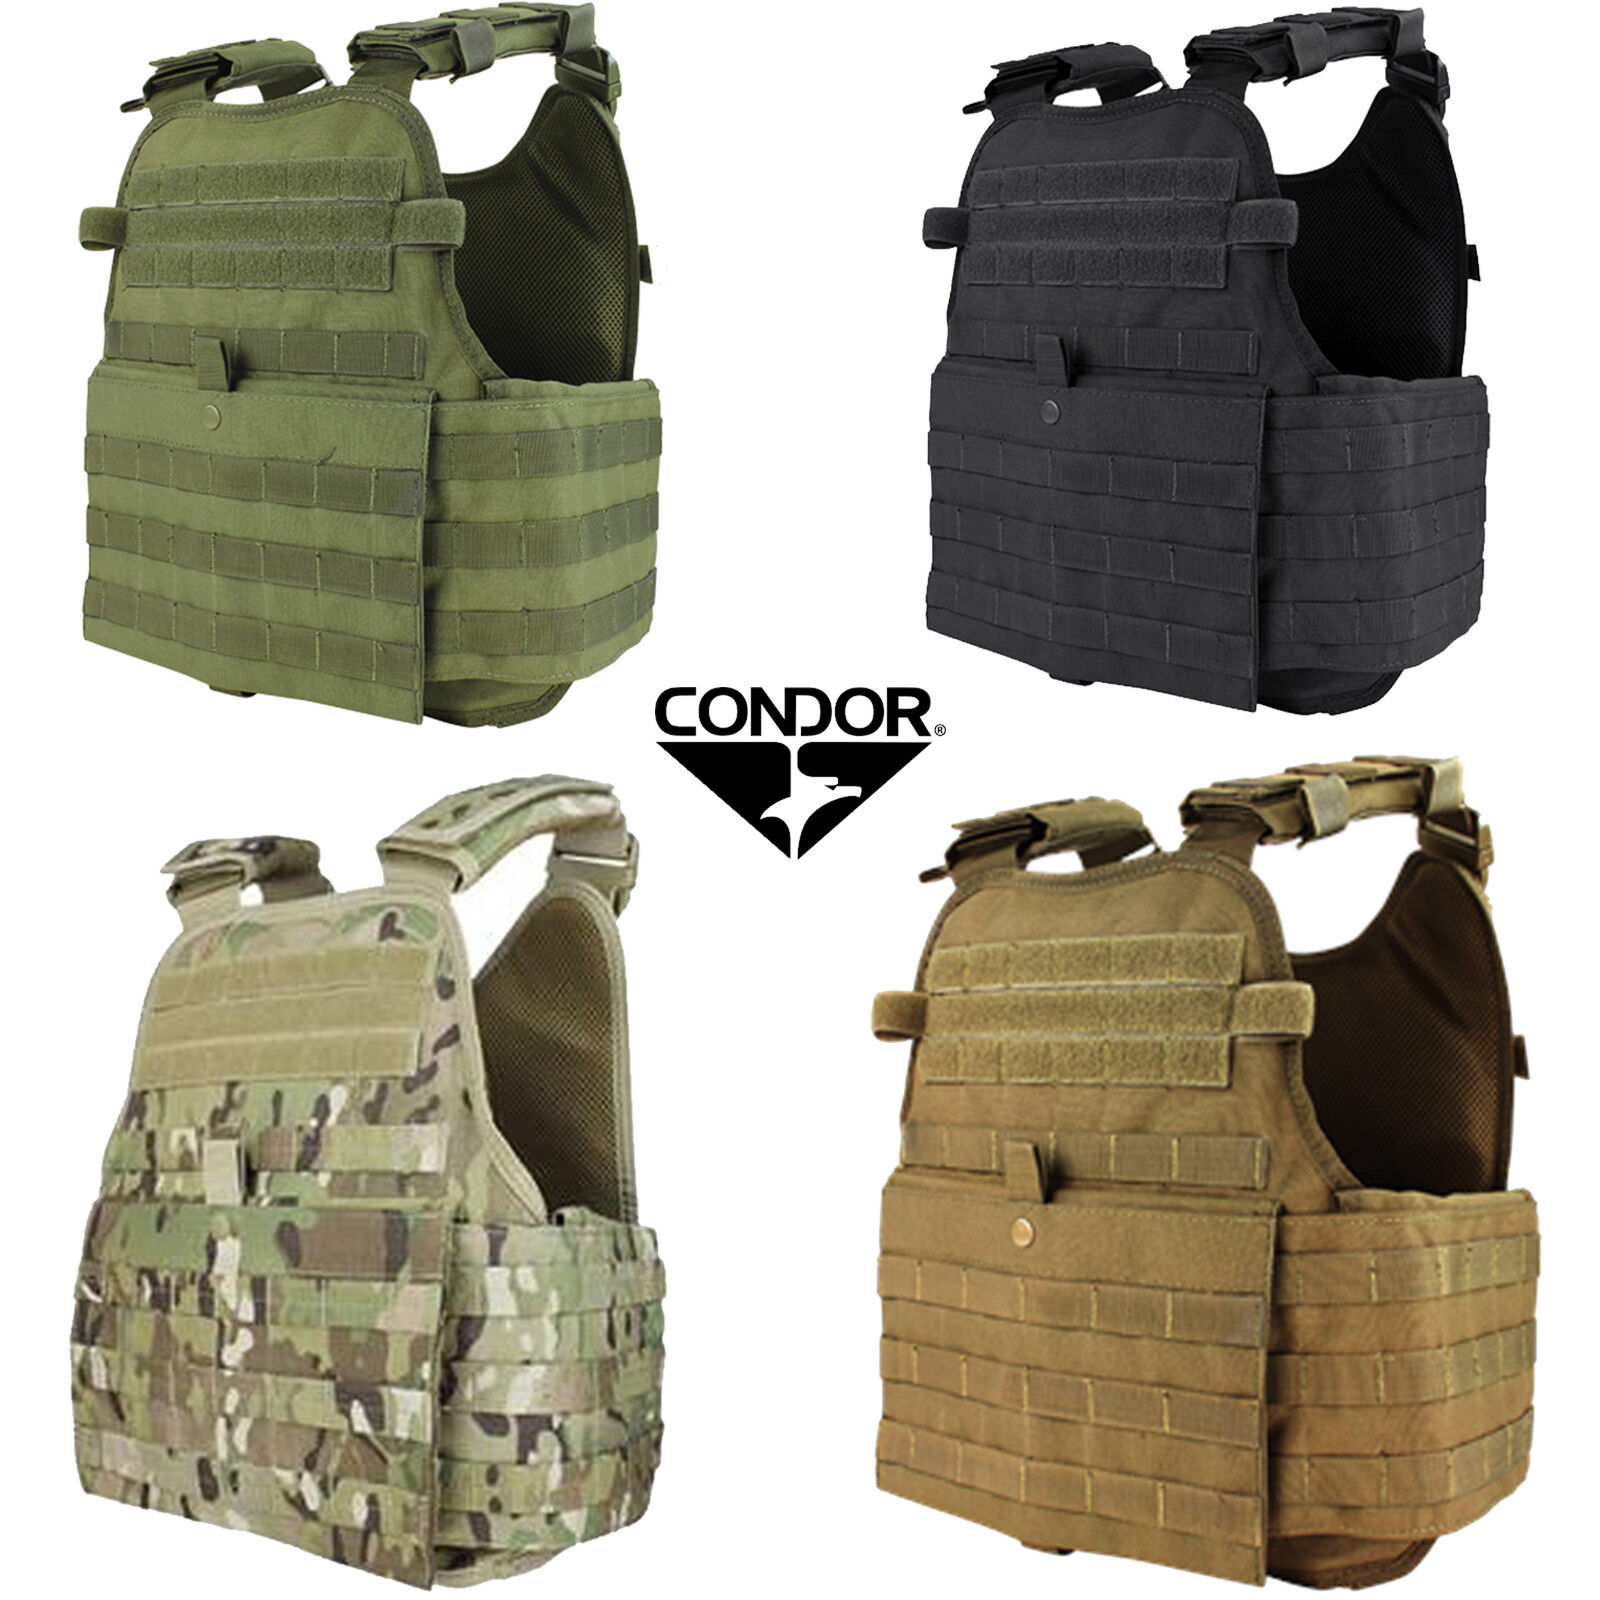 Condor MOLLE PALS Operator Plate Carrier Body  Armor Chest Assault Rig Vest MOPC  hot sale online